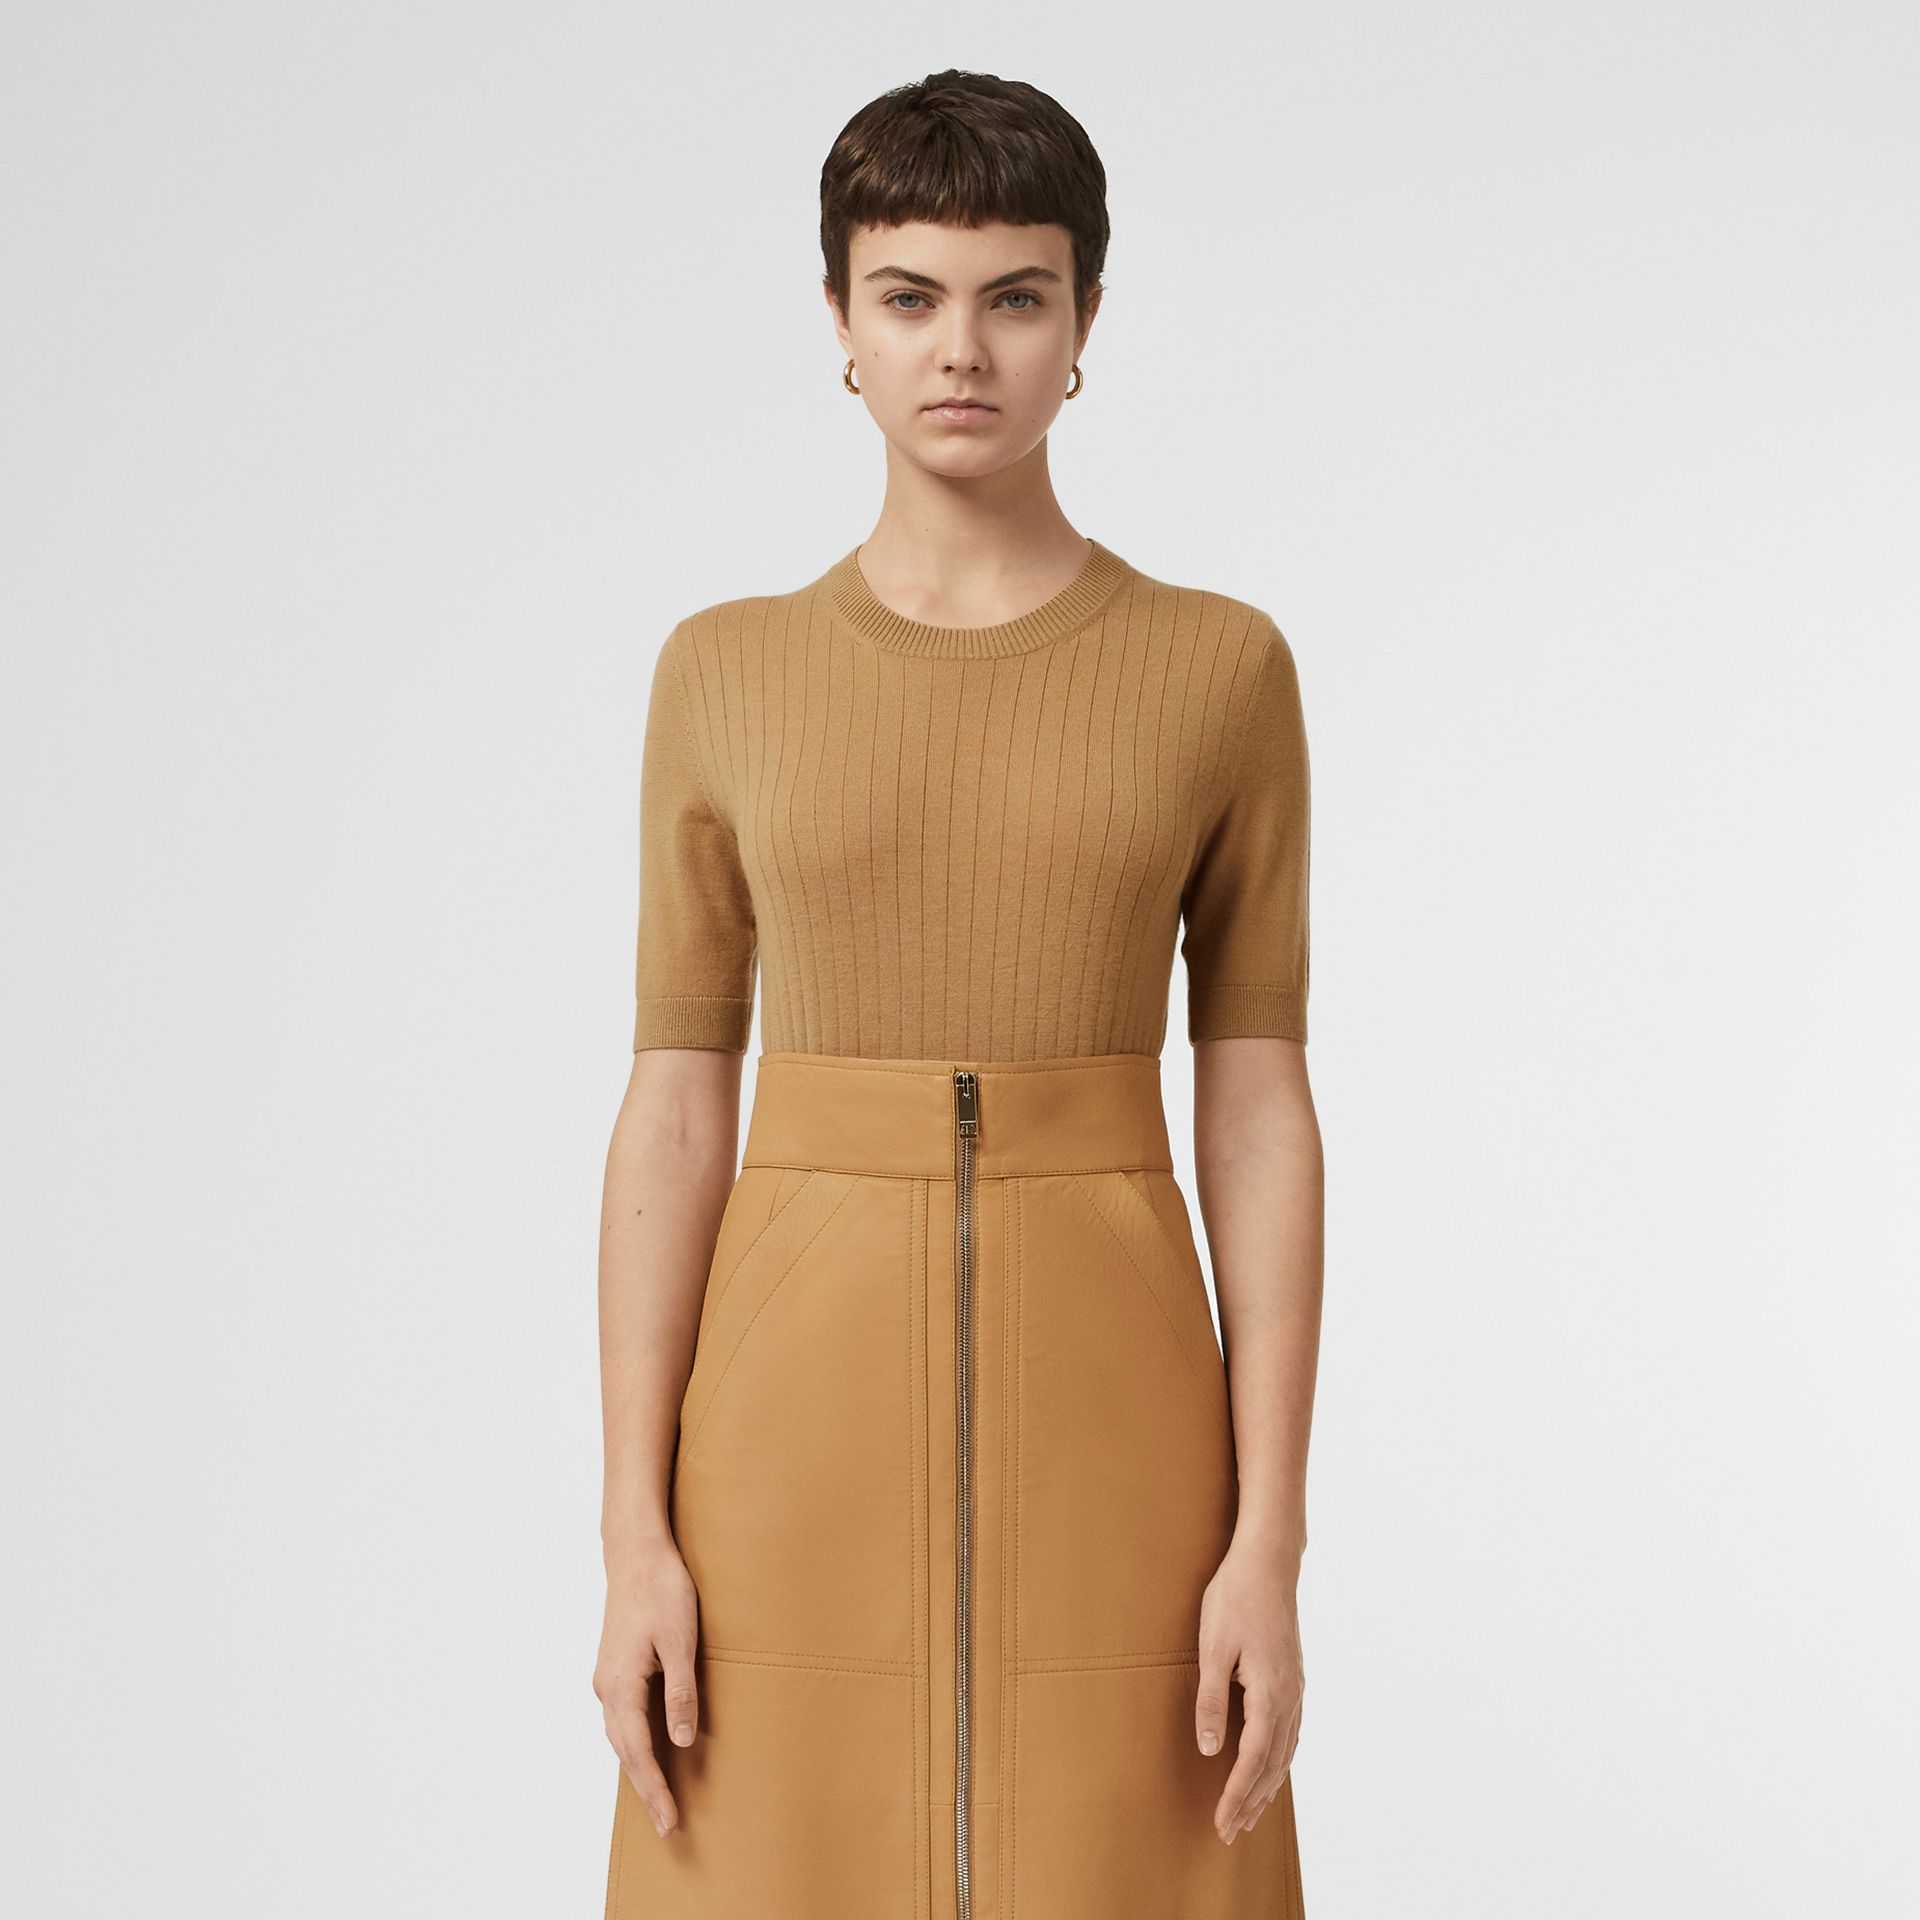 Short-sleeve Rib Knit Cashmere Sweater in Camel - Women | Burberry - gallery image 6